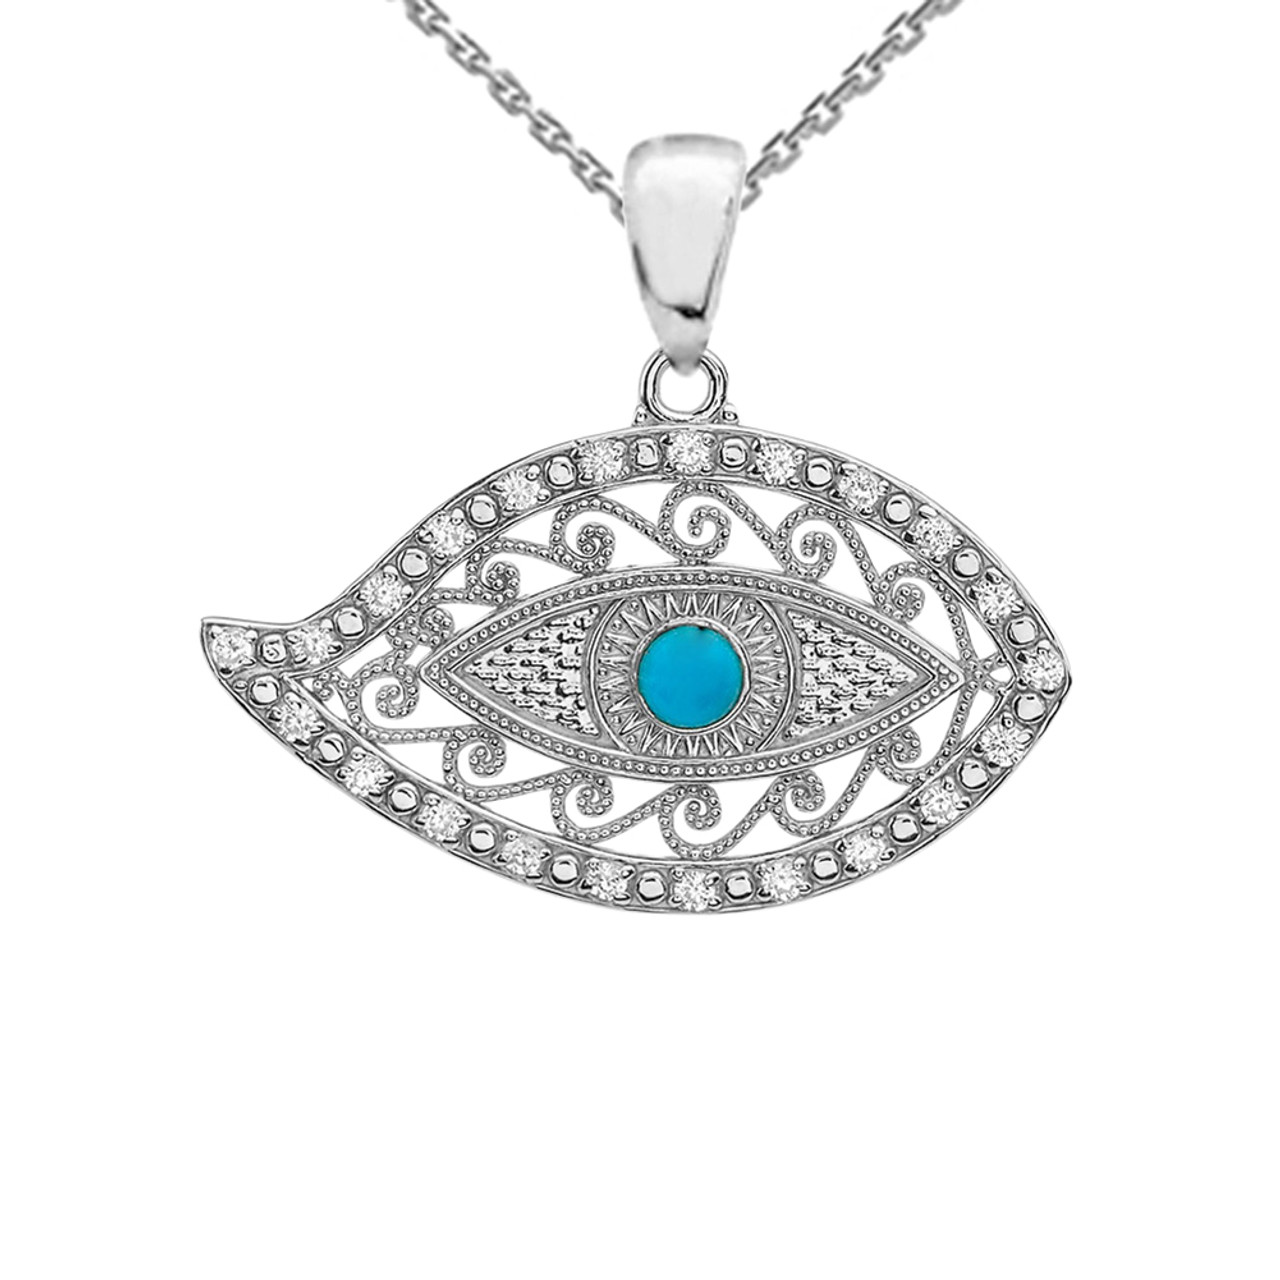 e697f7023 White Gold Evil Eye Cubic Zirconia Pendant Necklace With Turquoise ...